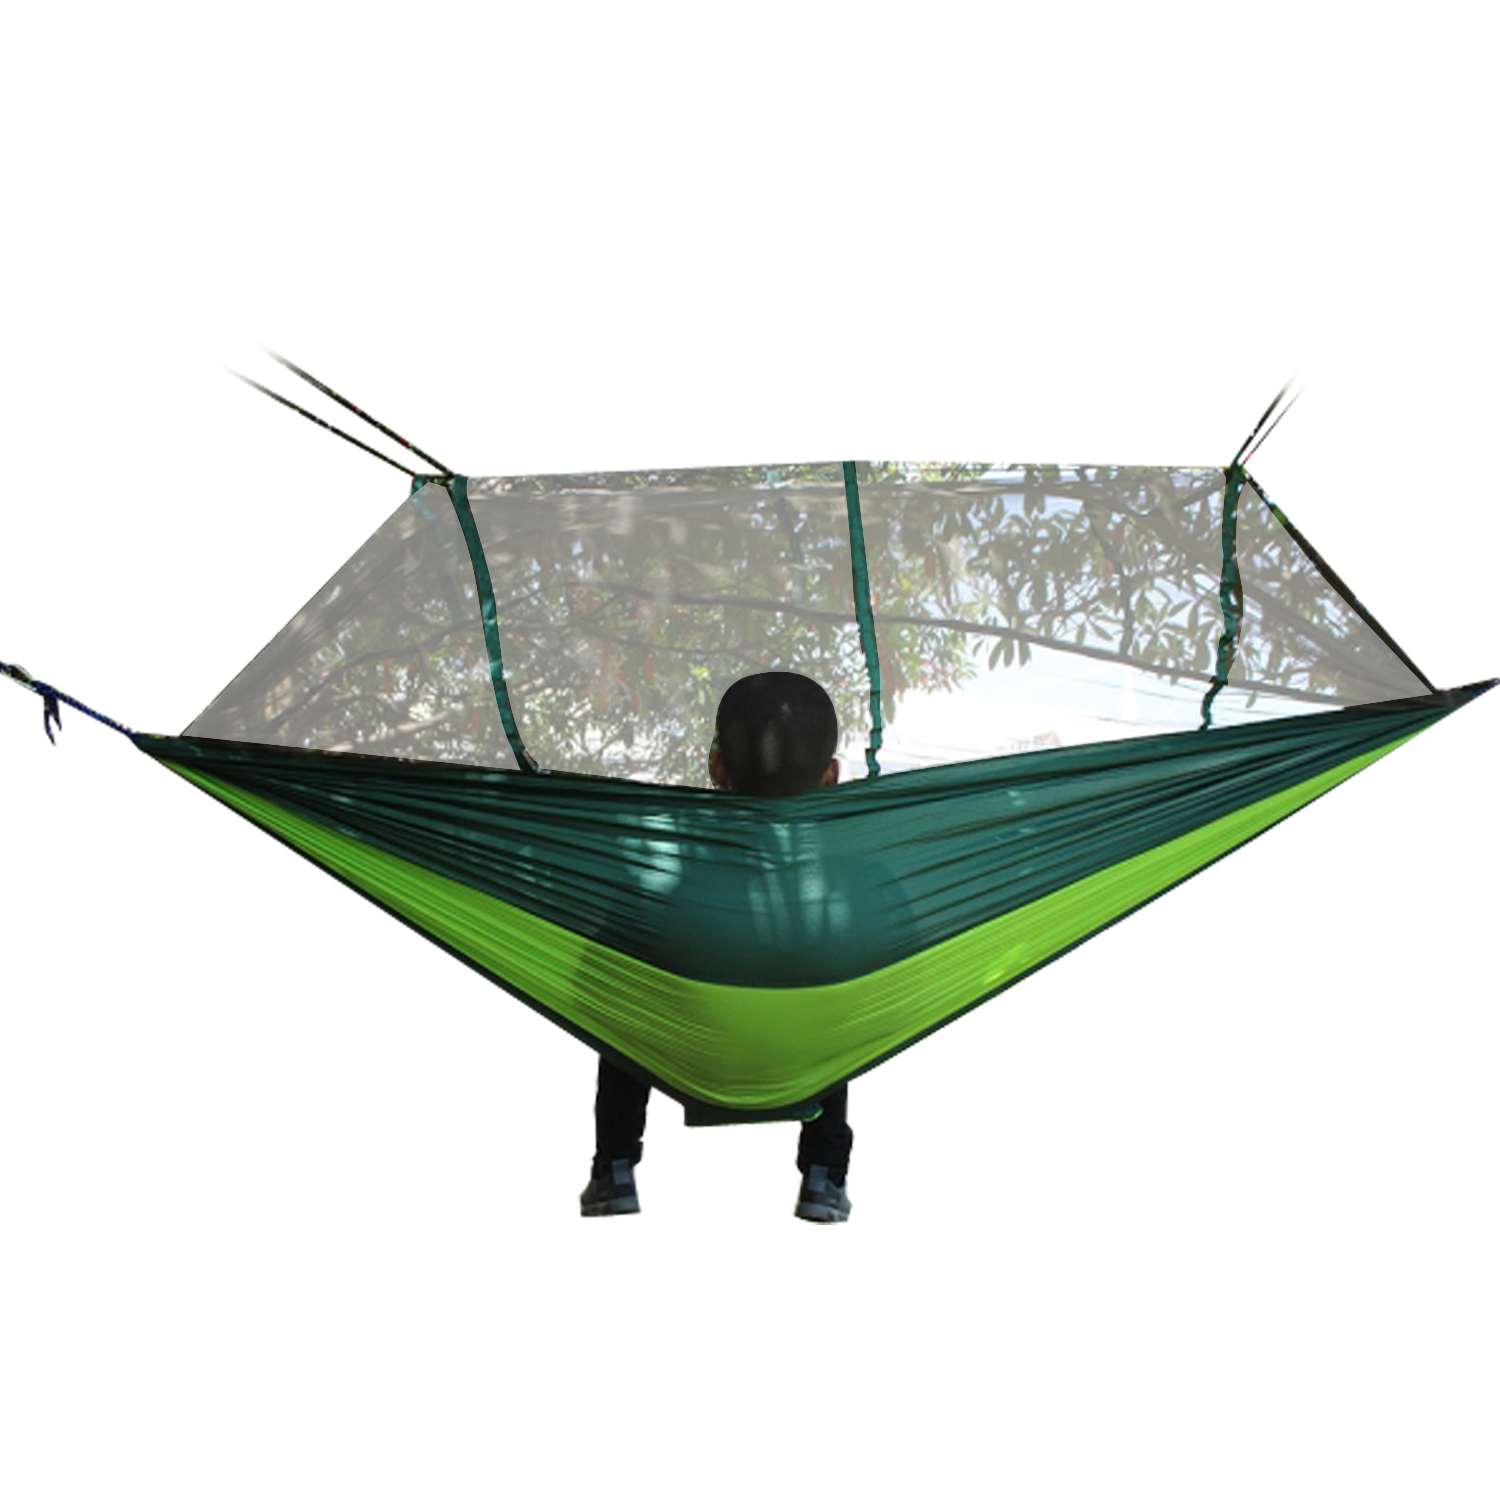 Double Camping Hammock Mosquito Net Parachute Hammock Mat Single Hamack 2 Person Tent Portable Hiking Backpacking Rede De Dormir